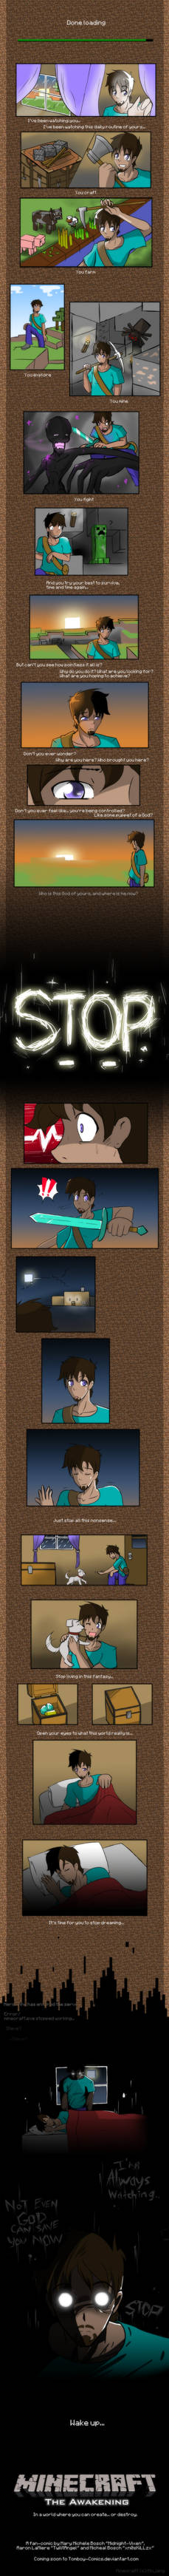 Minecraft Comic Teaser